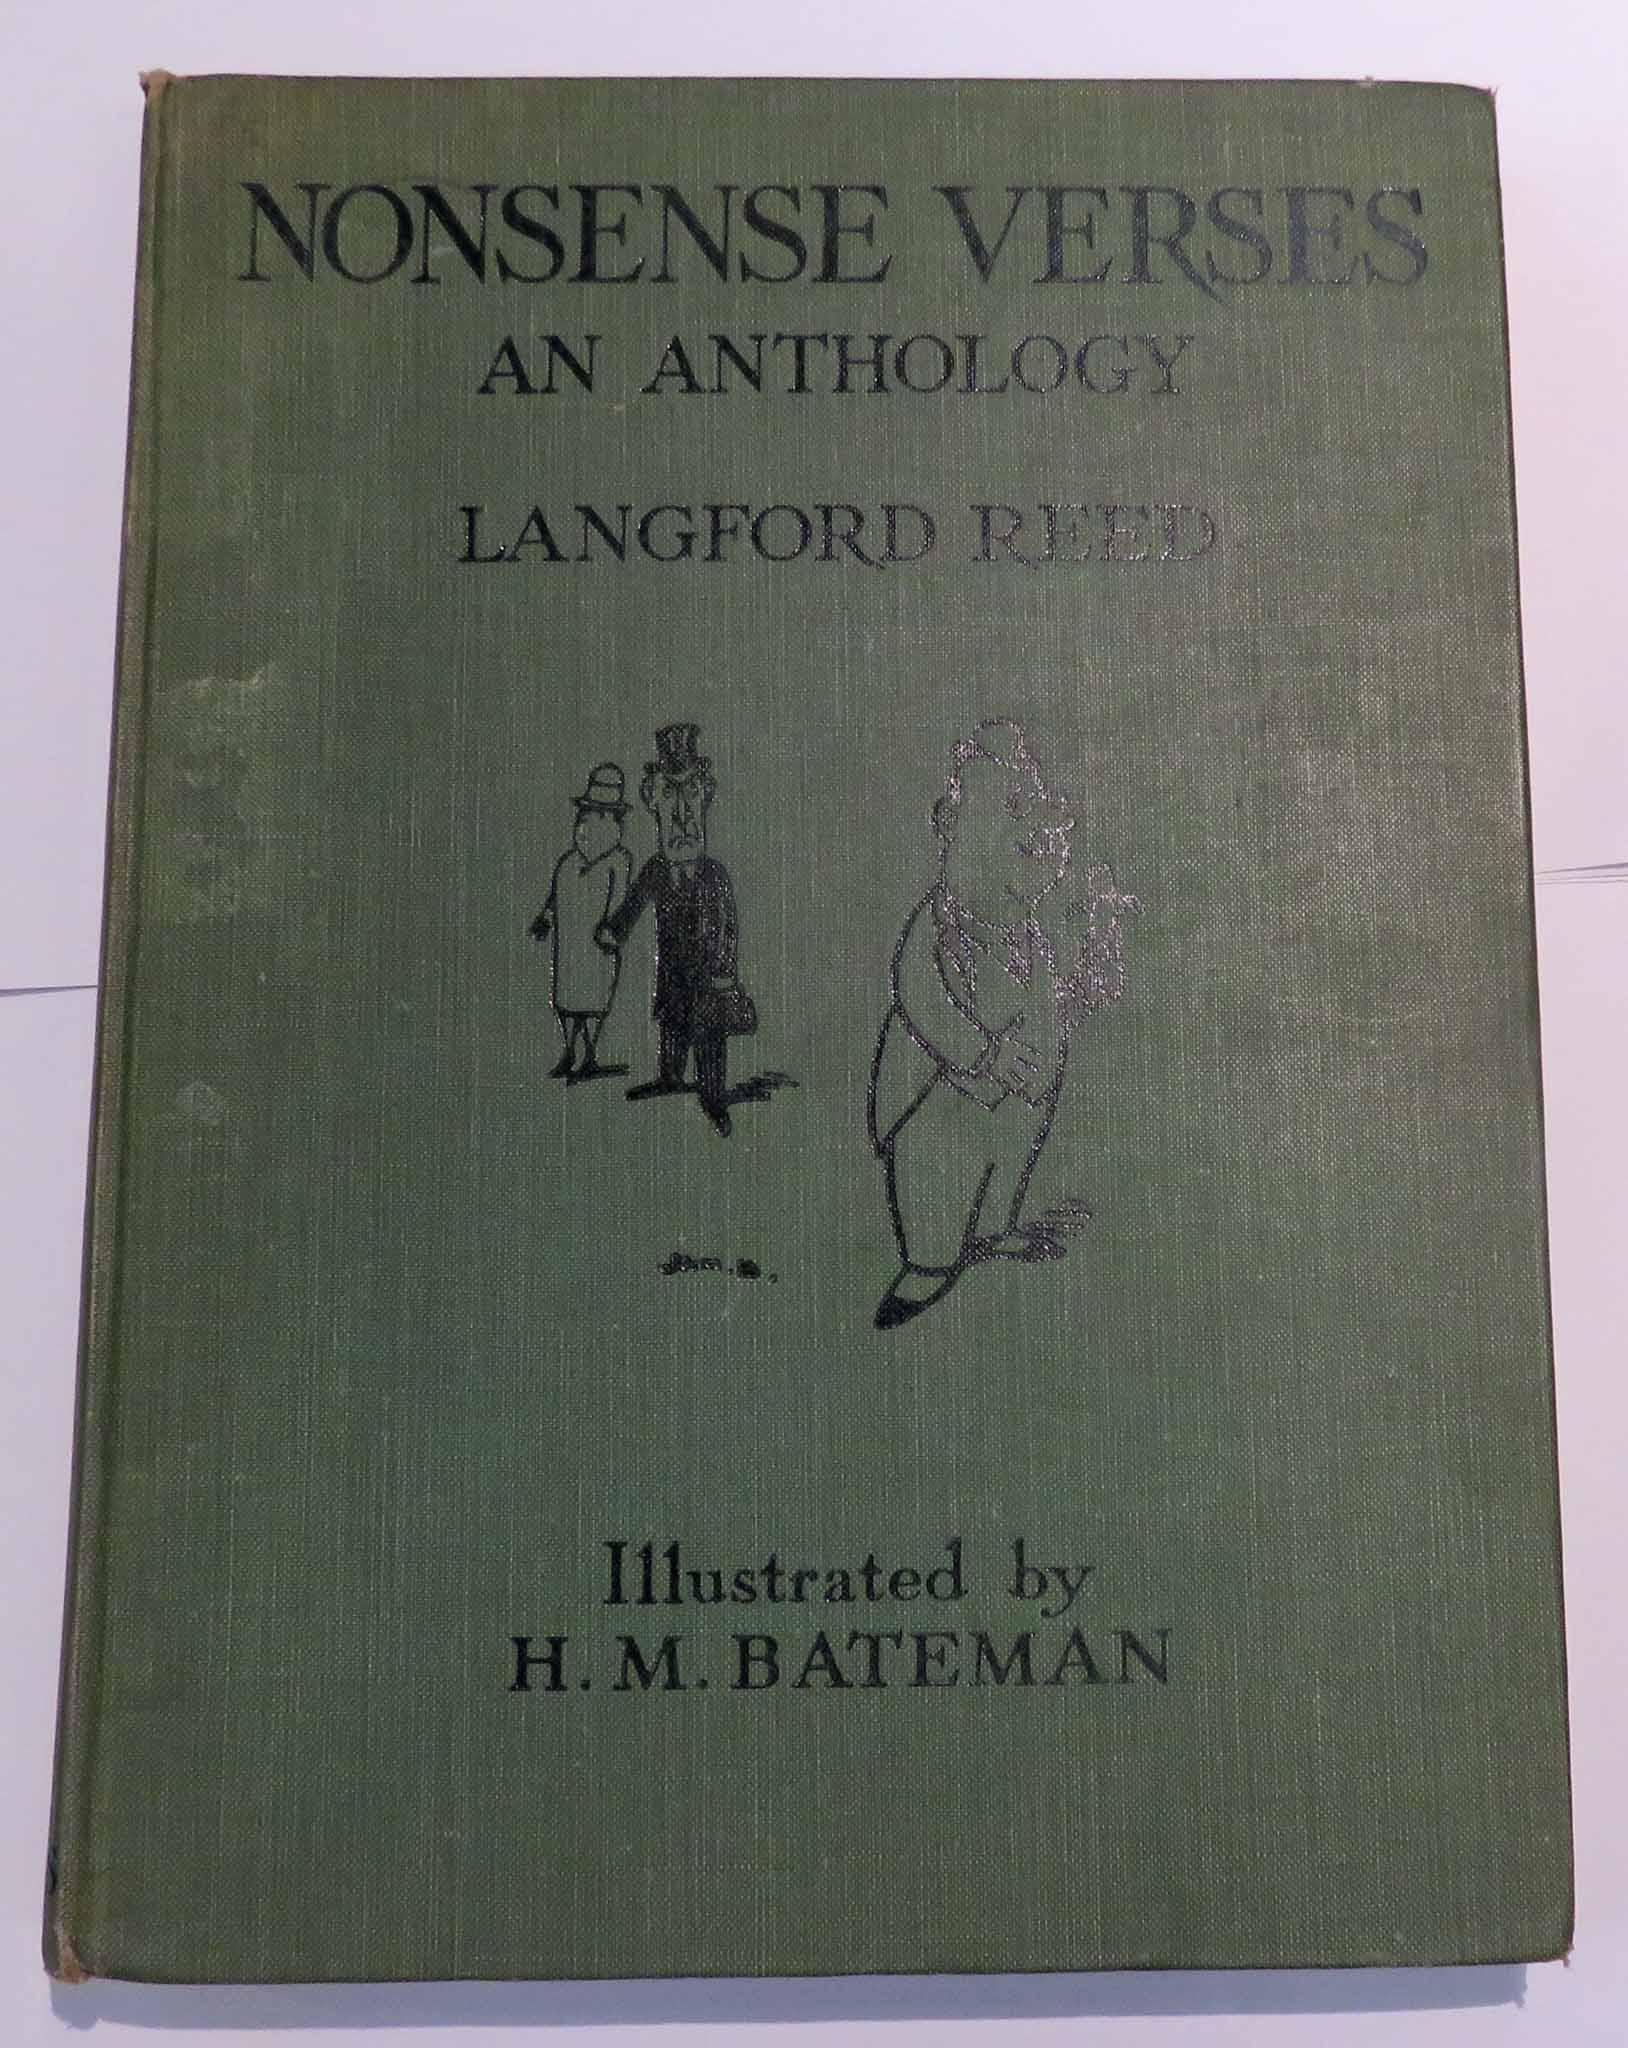 Nonsense Verses An Anthology